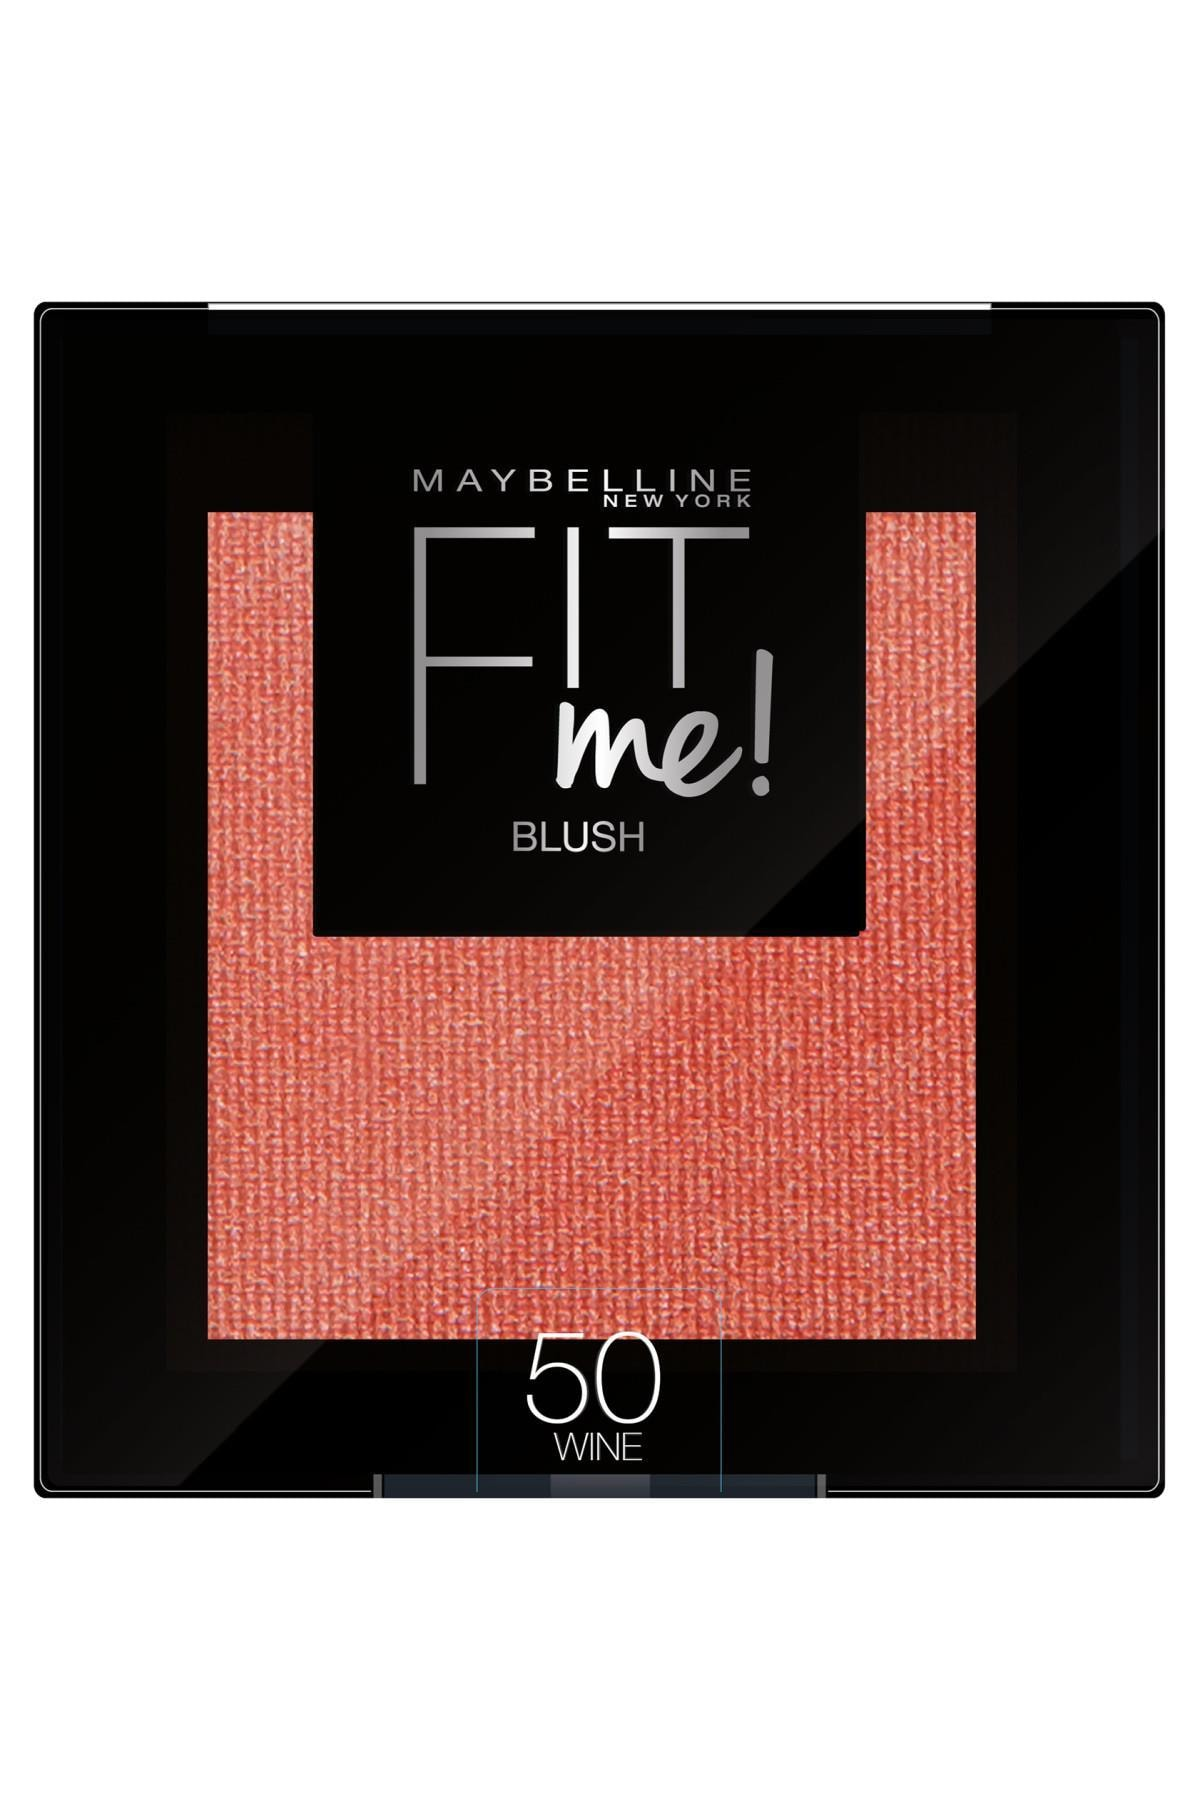 Maybelline New York Allık - Fit Me Blush 50 Wine 3600531537357